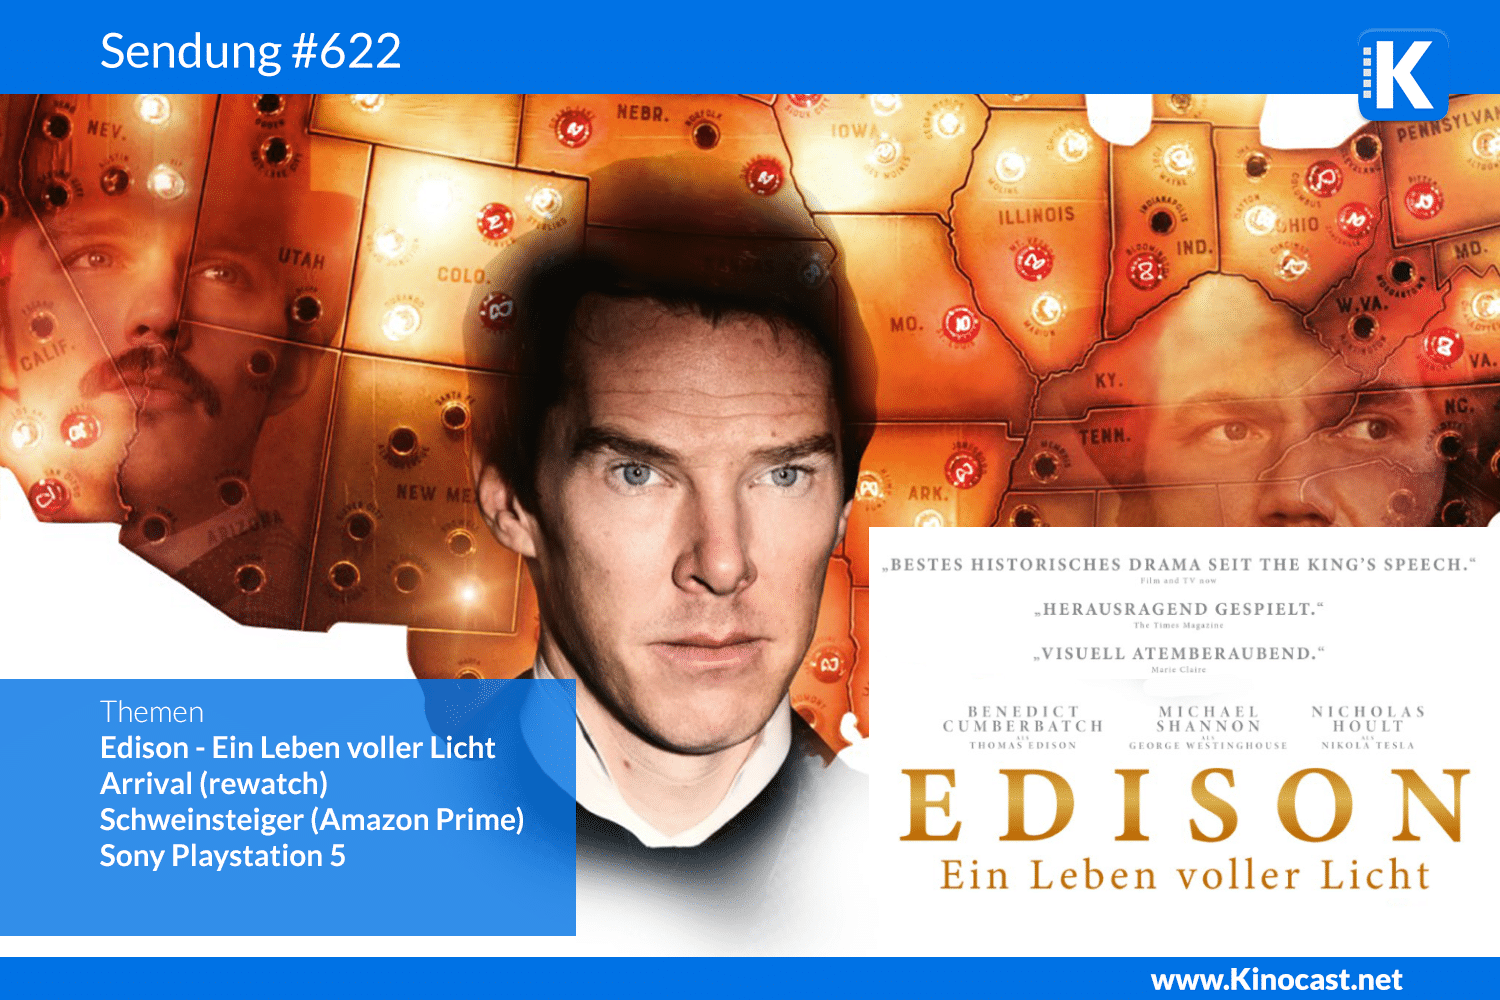 Edison Ein Leben voller Licht Current War Sony Playstation Review Download film german deutsch Podcast